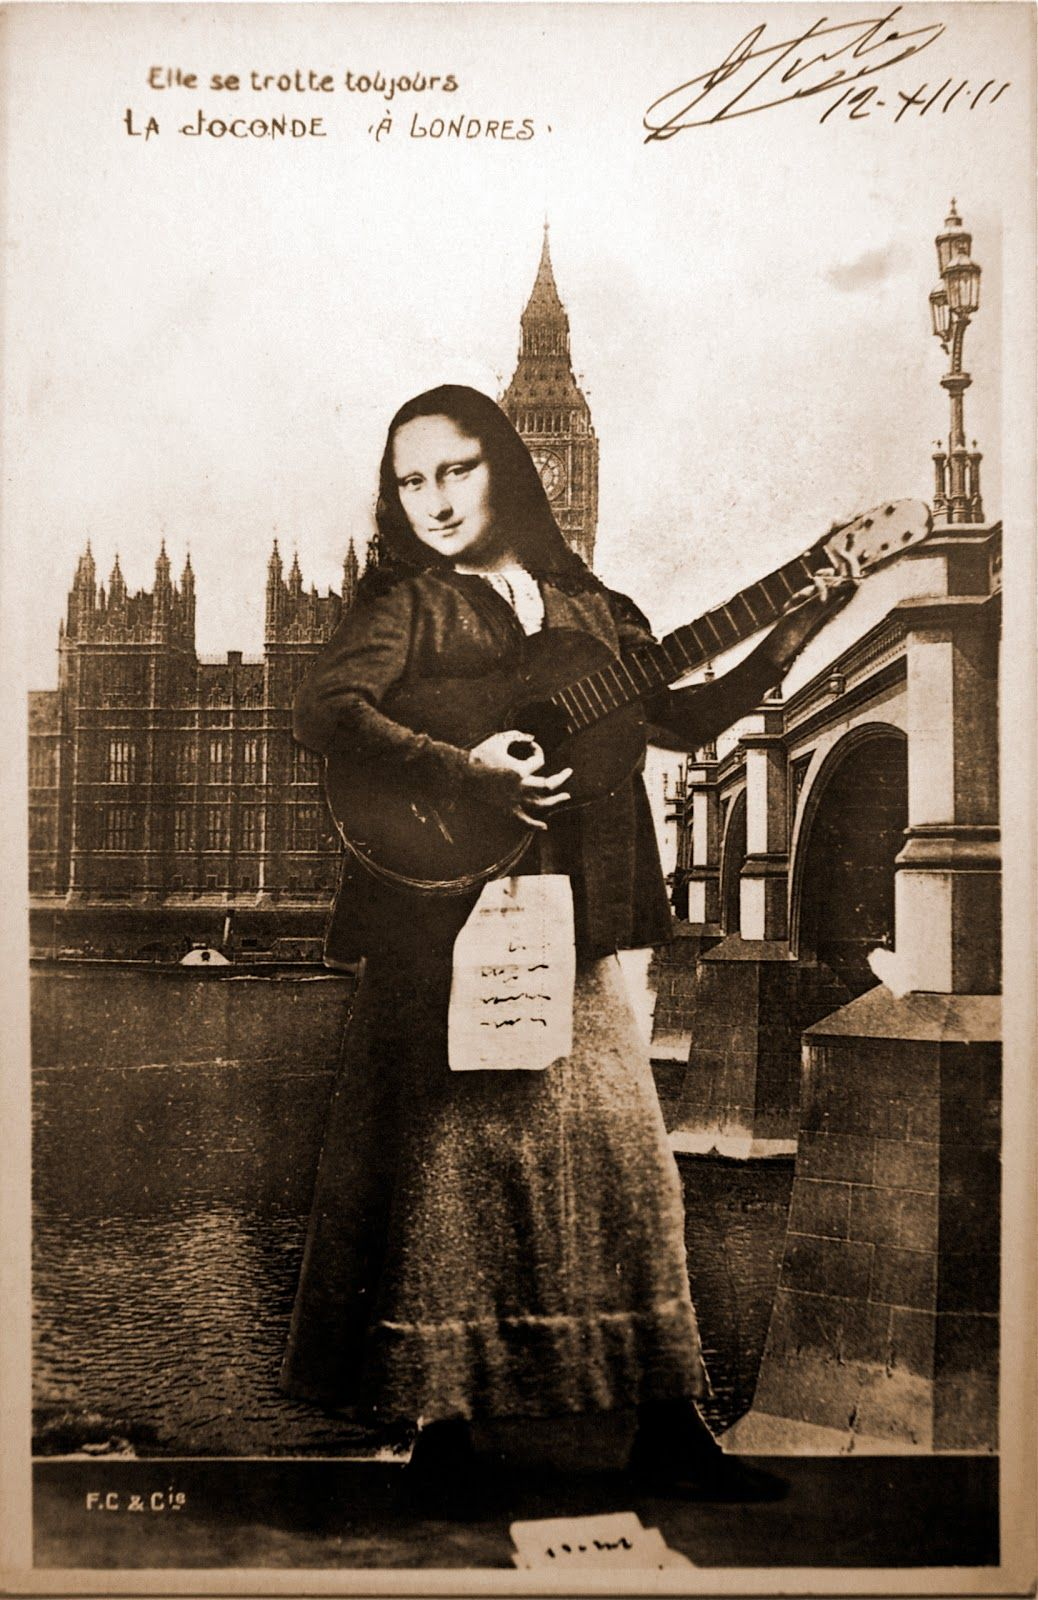 A Blog About Mona Lisa Is Missing A Documentary About Vincenzo Peruggia The Man Who Stole The Mona Lisa In 1911 Mona Lisa Mona Friends Mona Lisa Parody